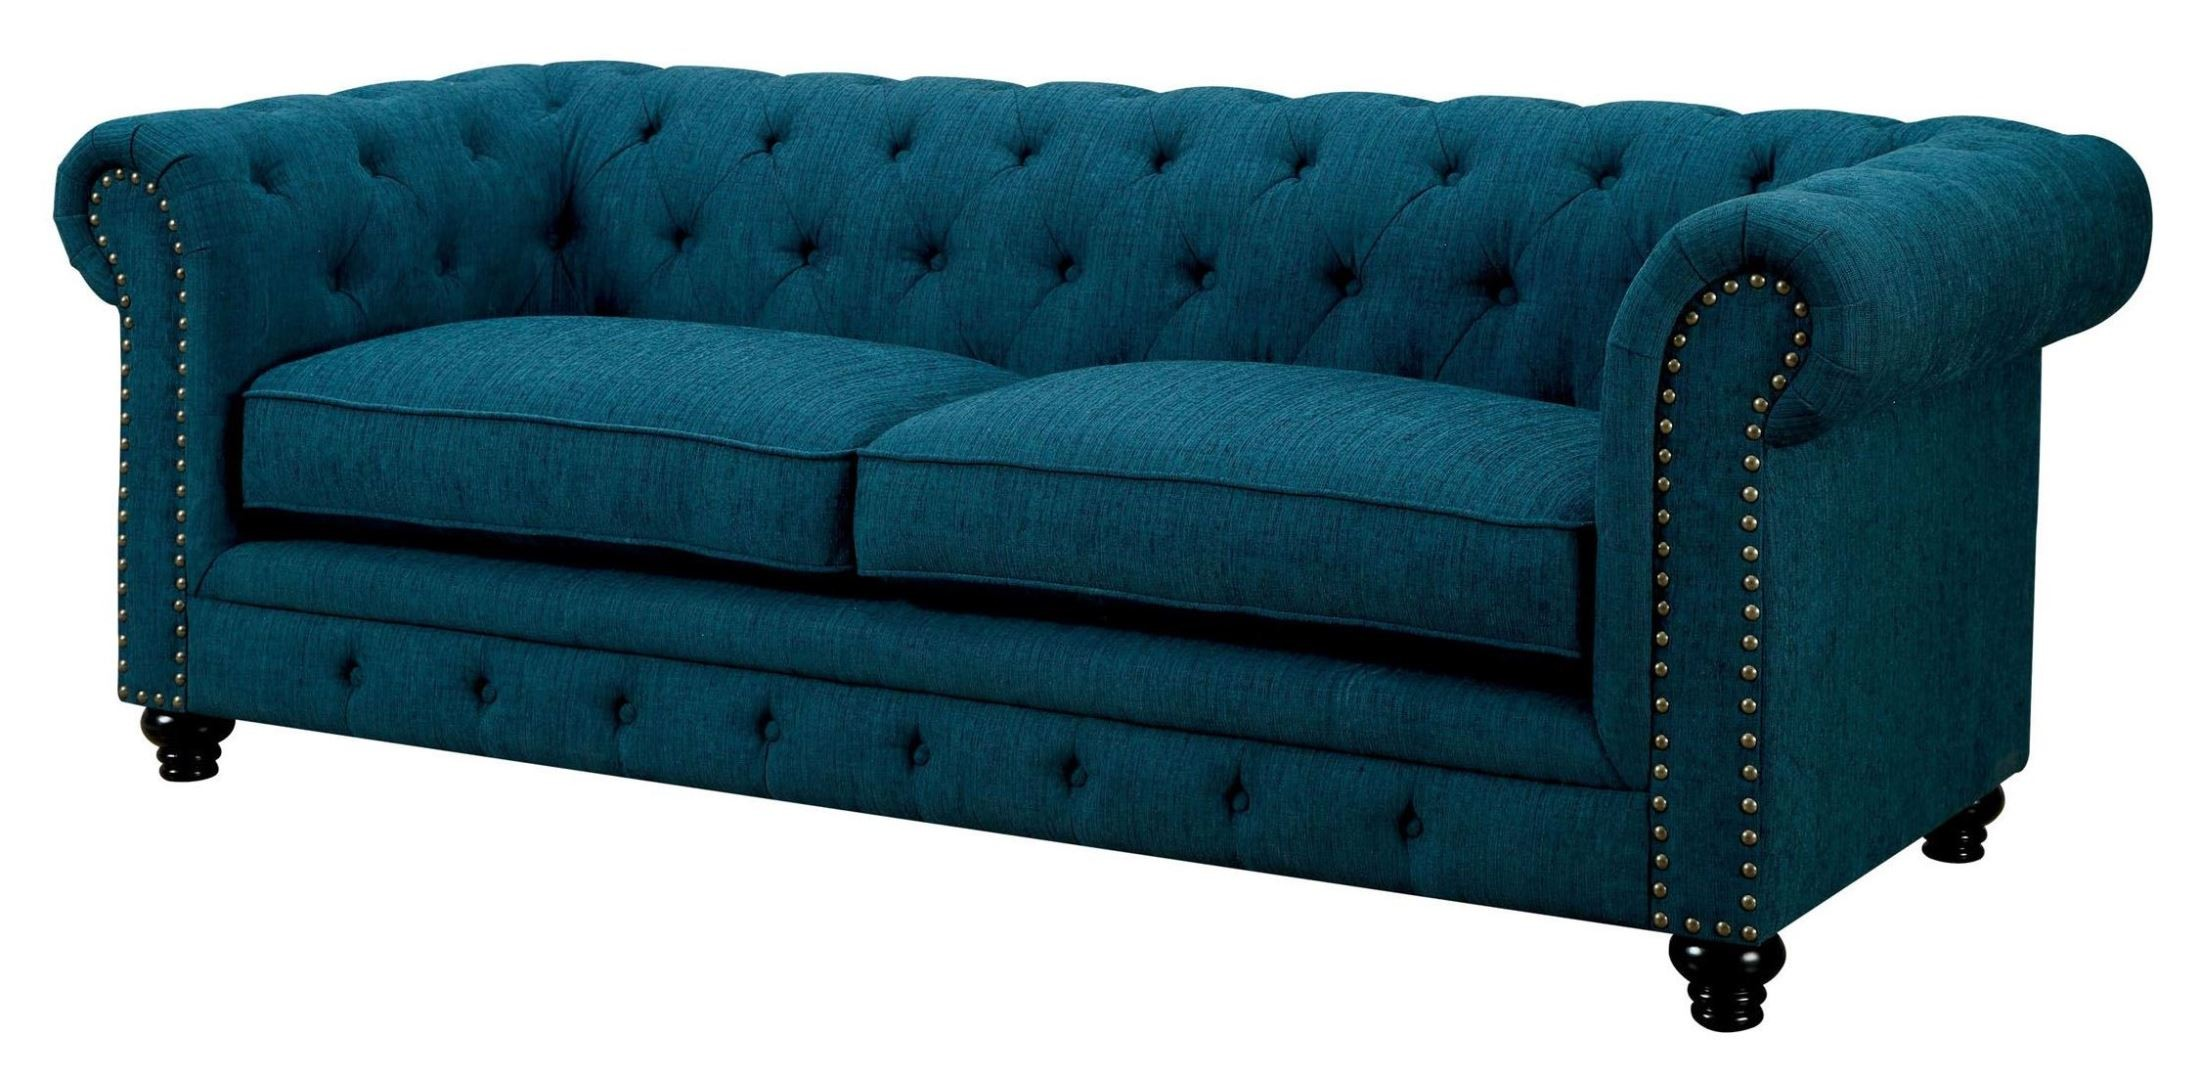 cheap teal sofas black decorating living room ideas stanford dark fabric sofa from furniture of america